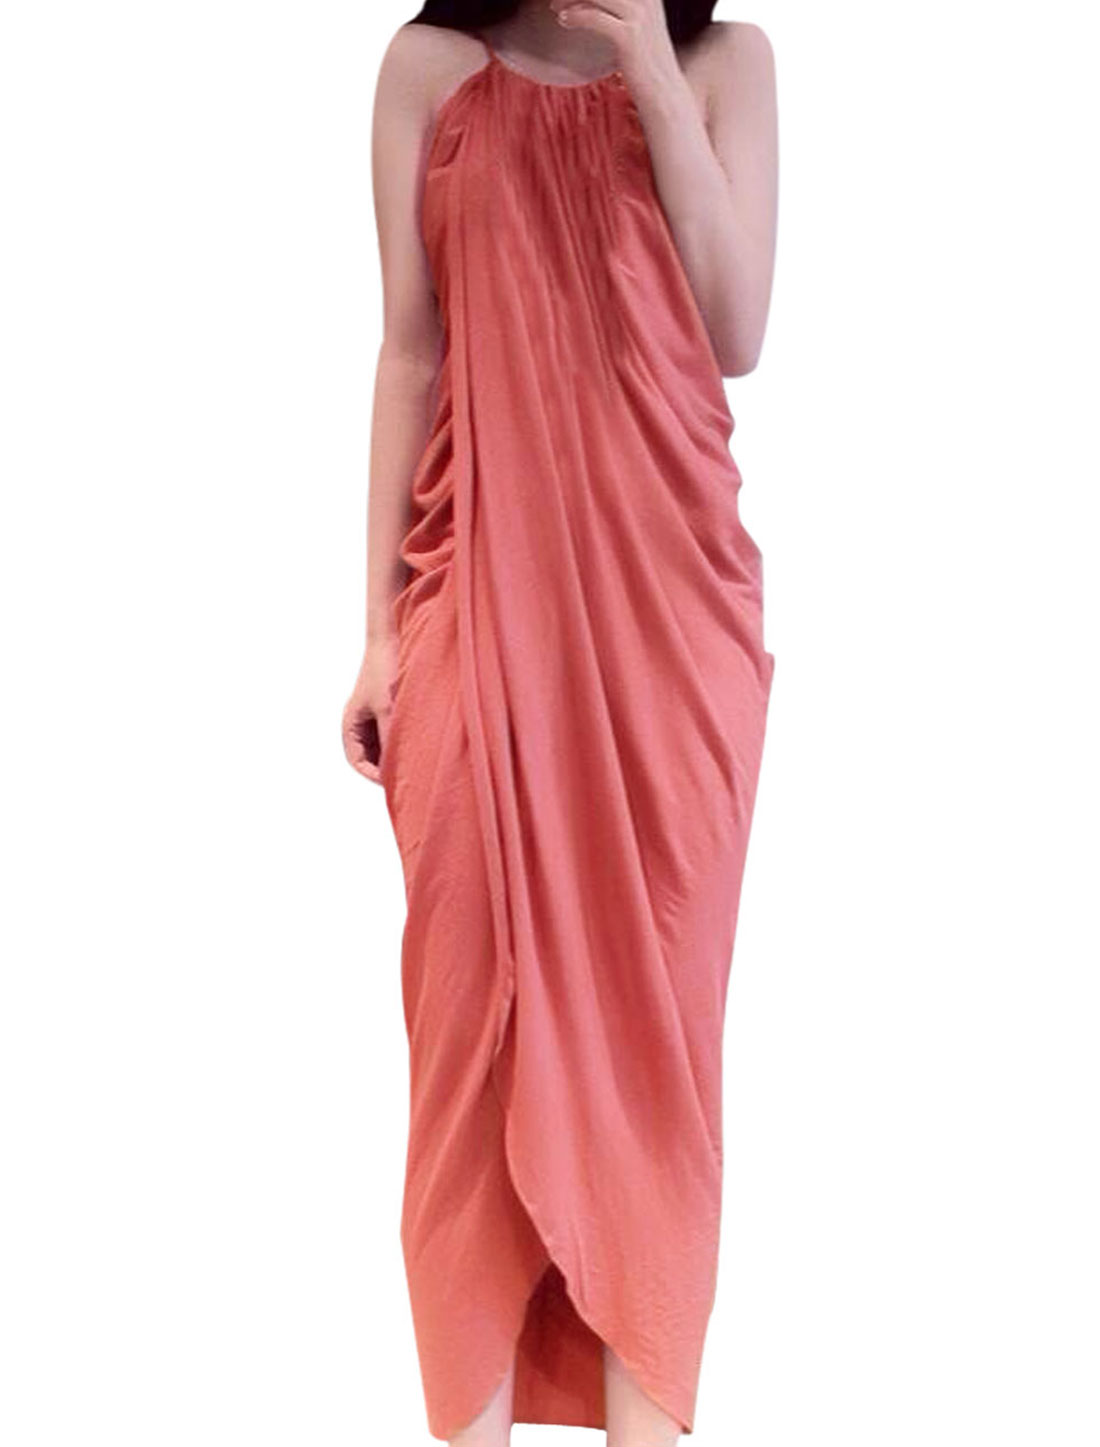 Lady Chic Round Neck Spaghetti Strap Low High Hem Wrap Dress Pink XS